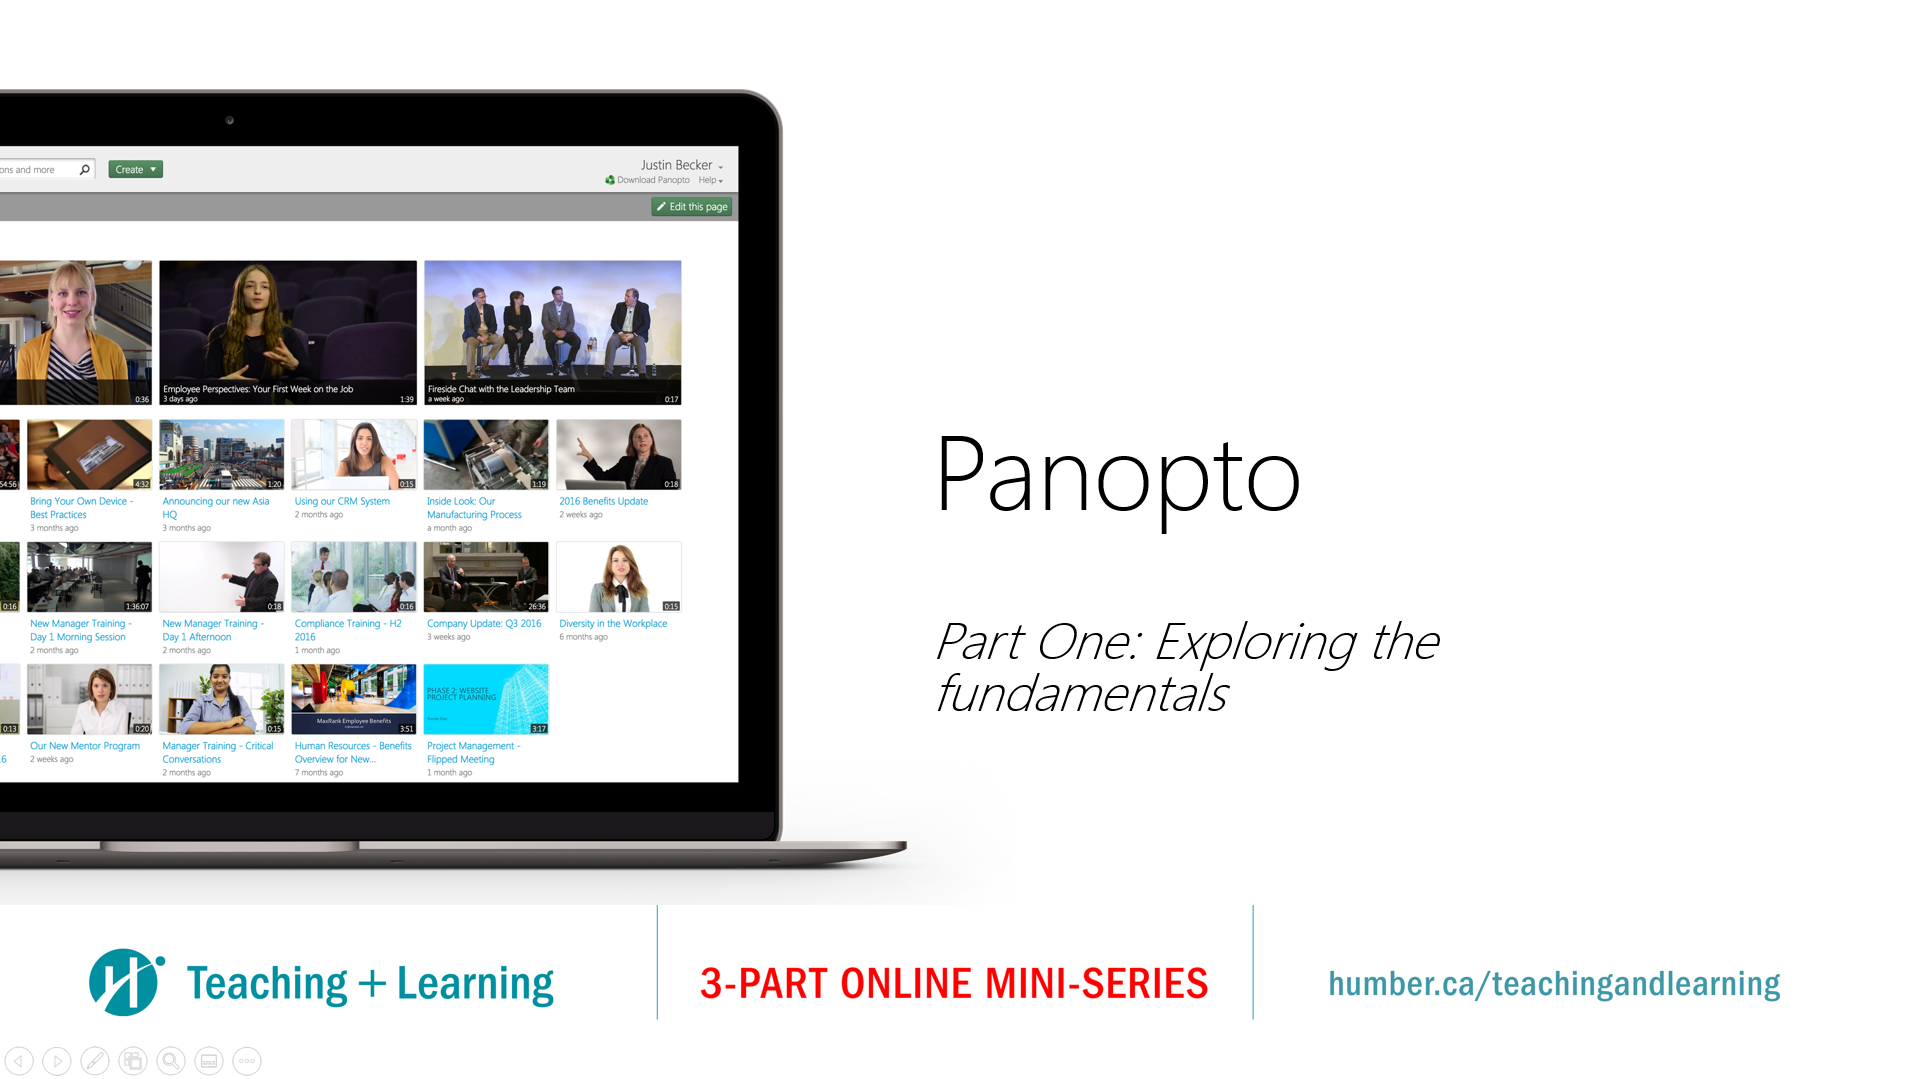 Panopto Part One: Exploring the fundamentals